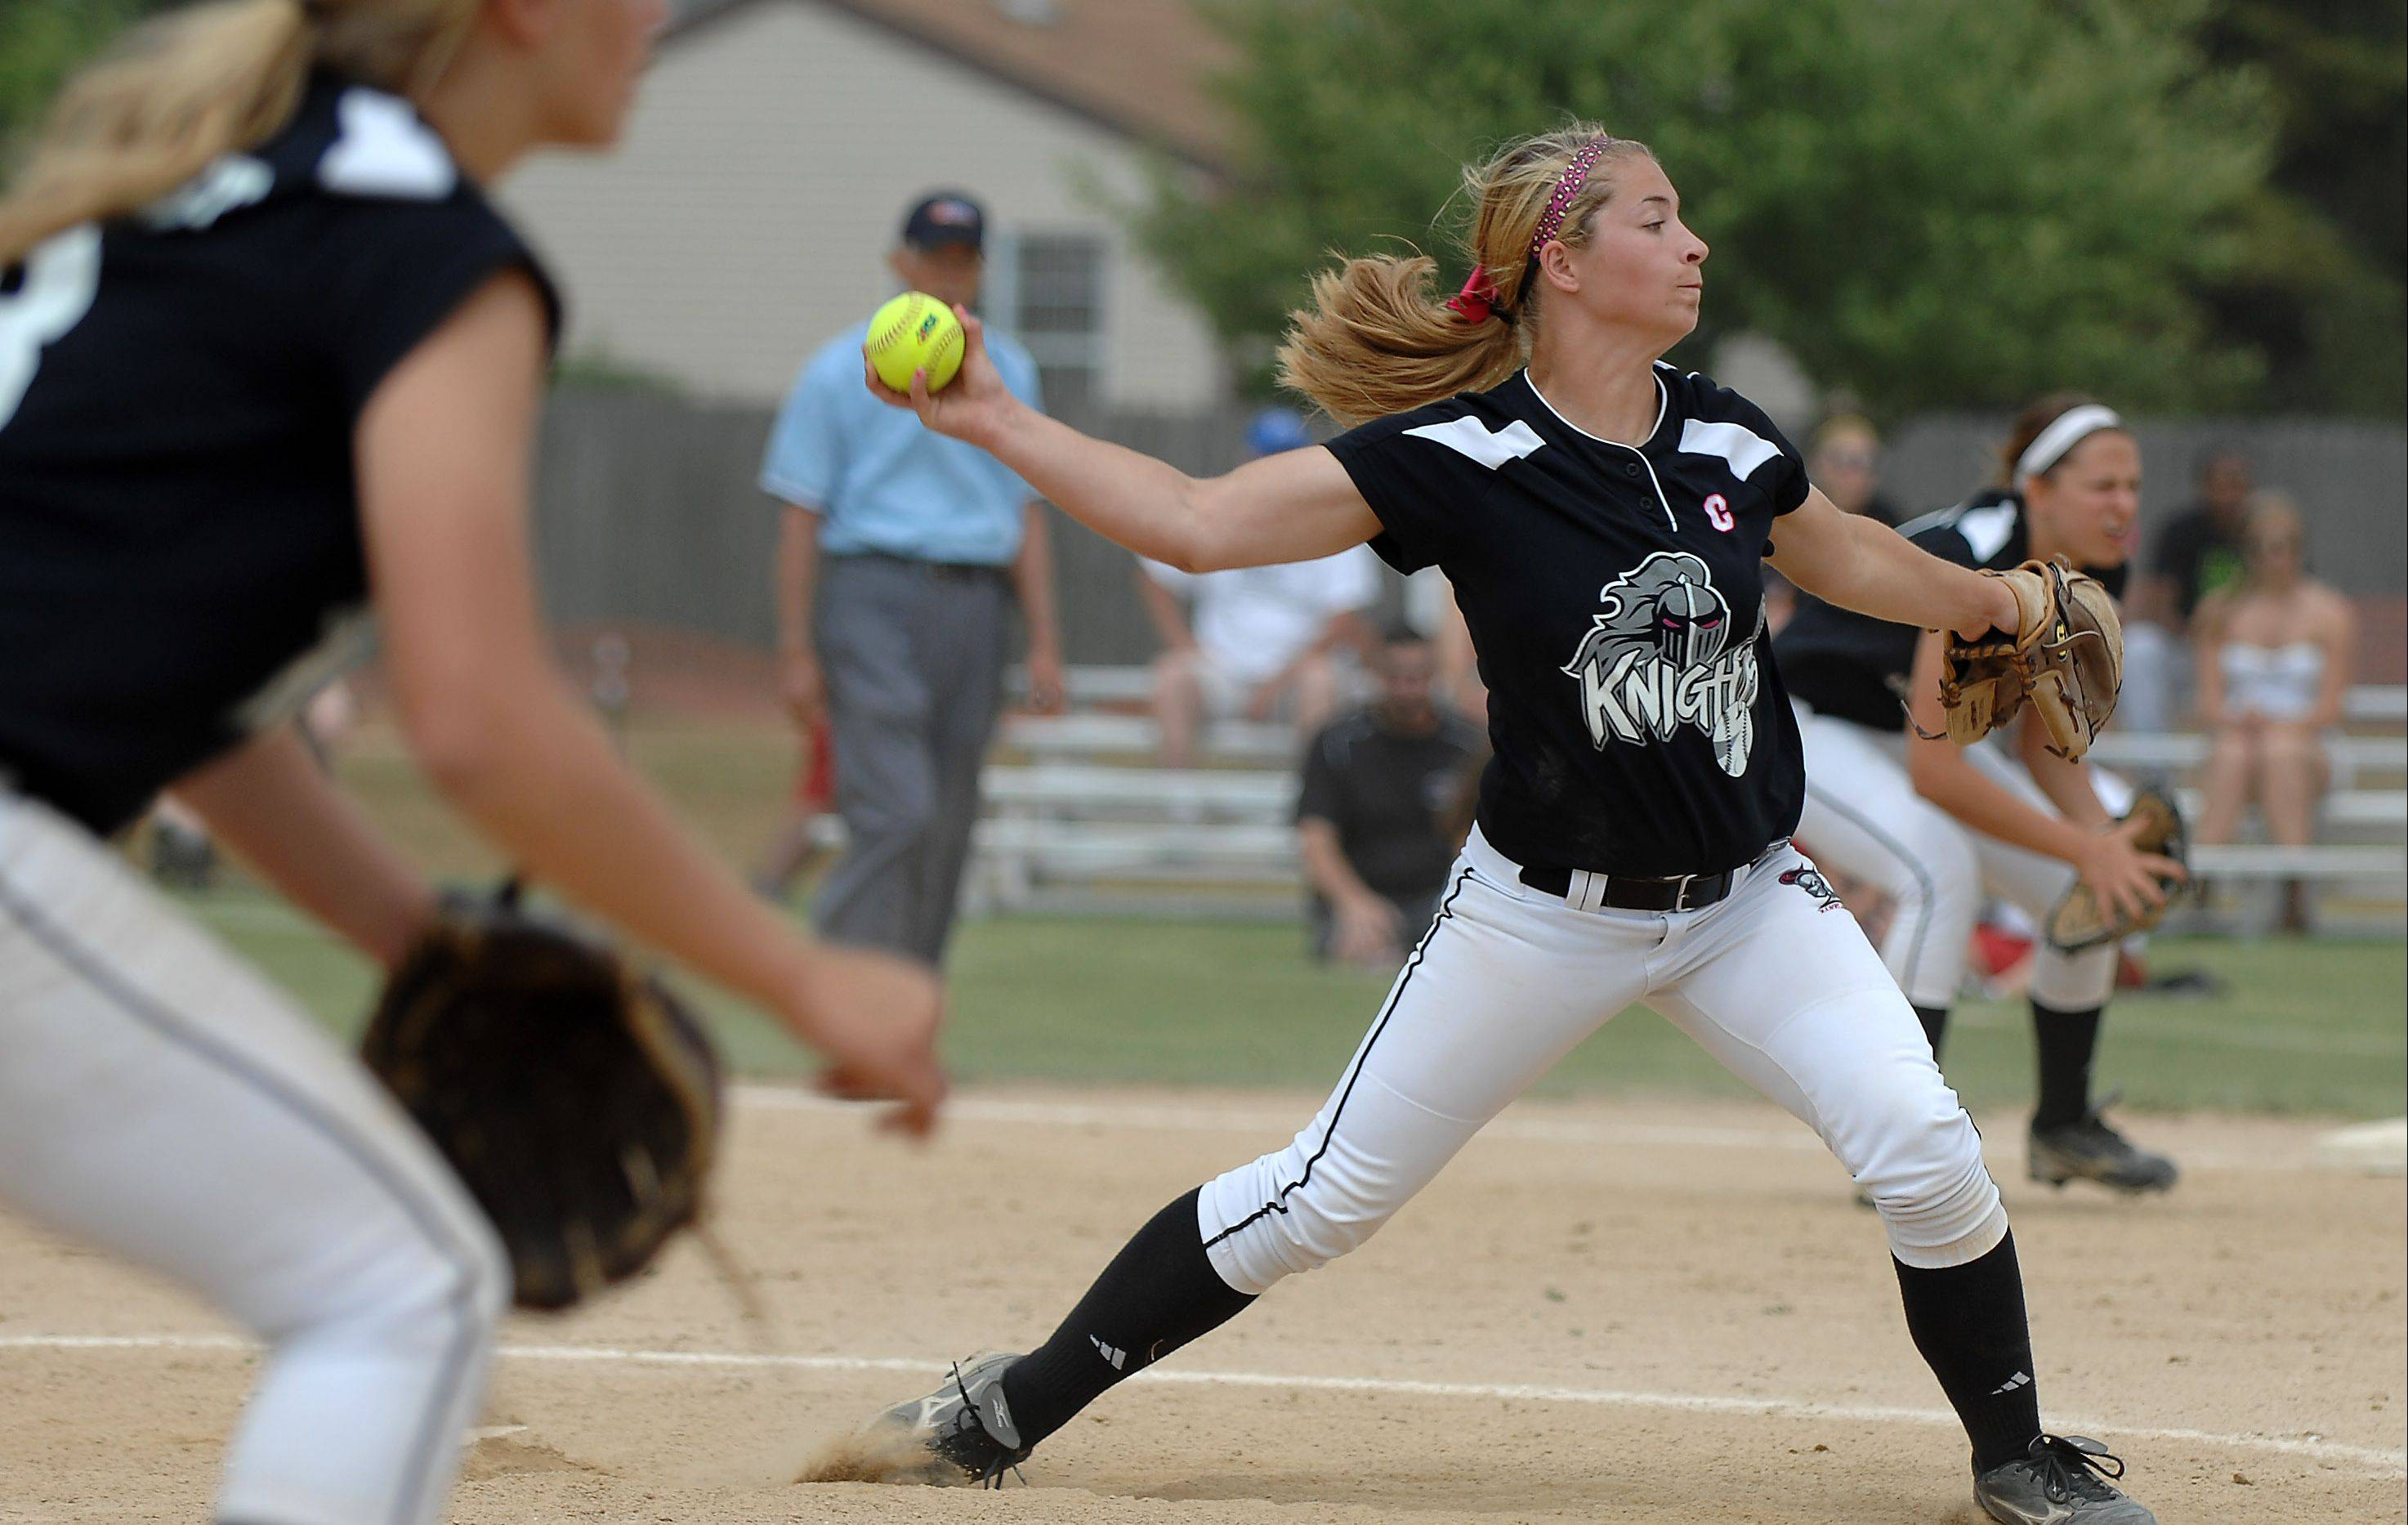 Kaneland's Delani Vest earned the win in this regional championship game against Yorkville which turned out to be the last of her 50 victories for the Knights.